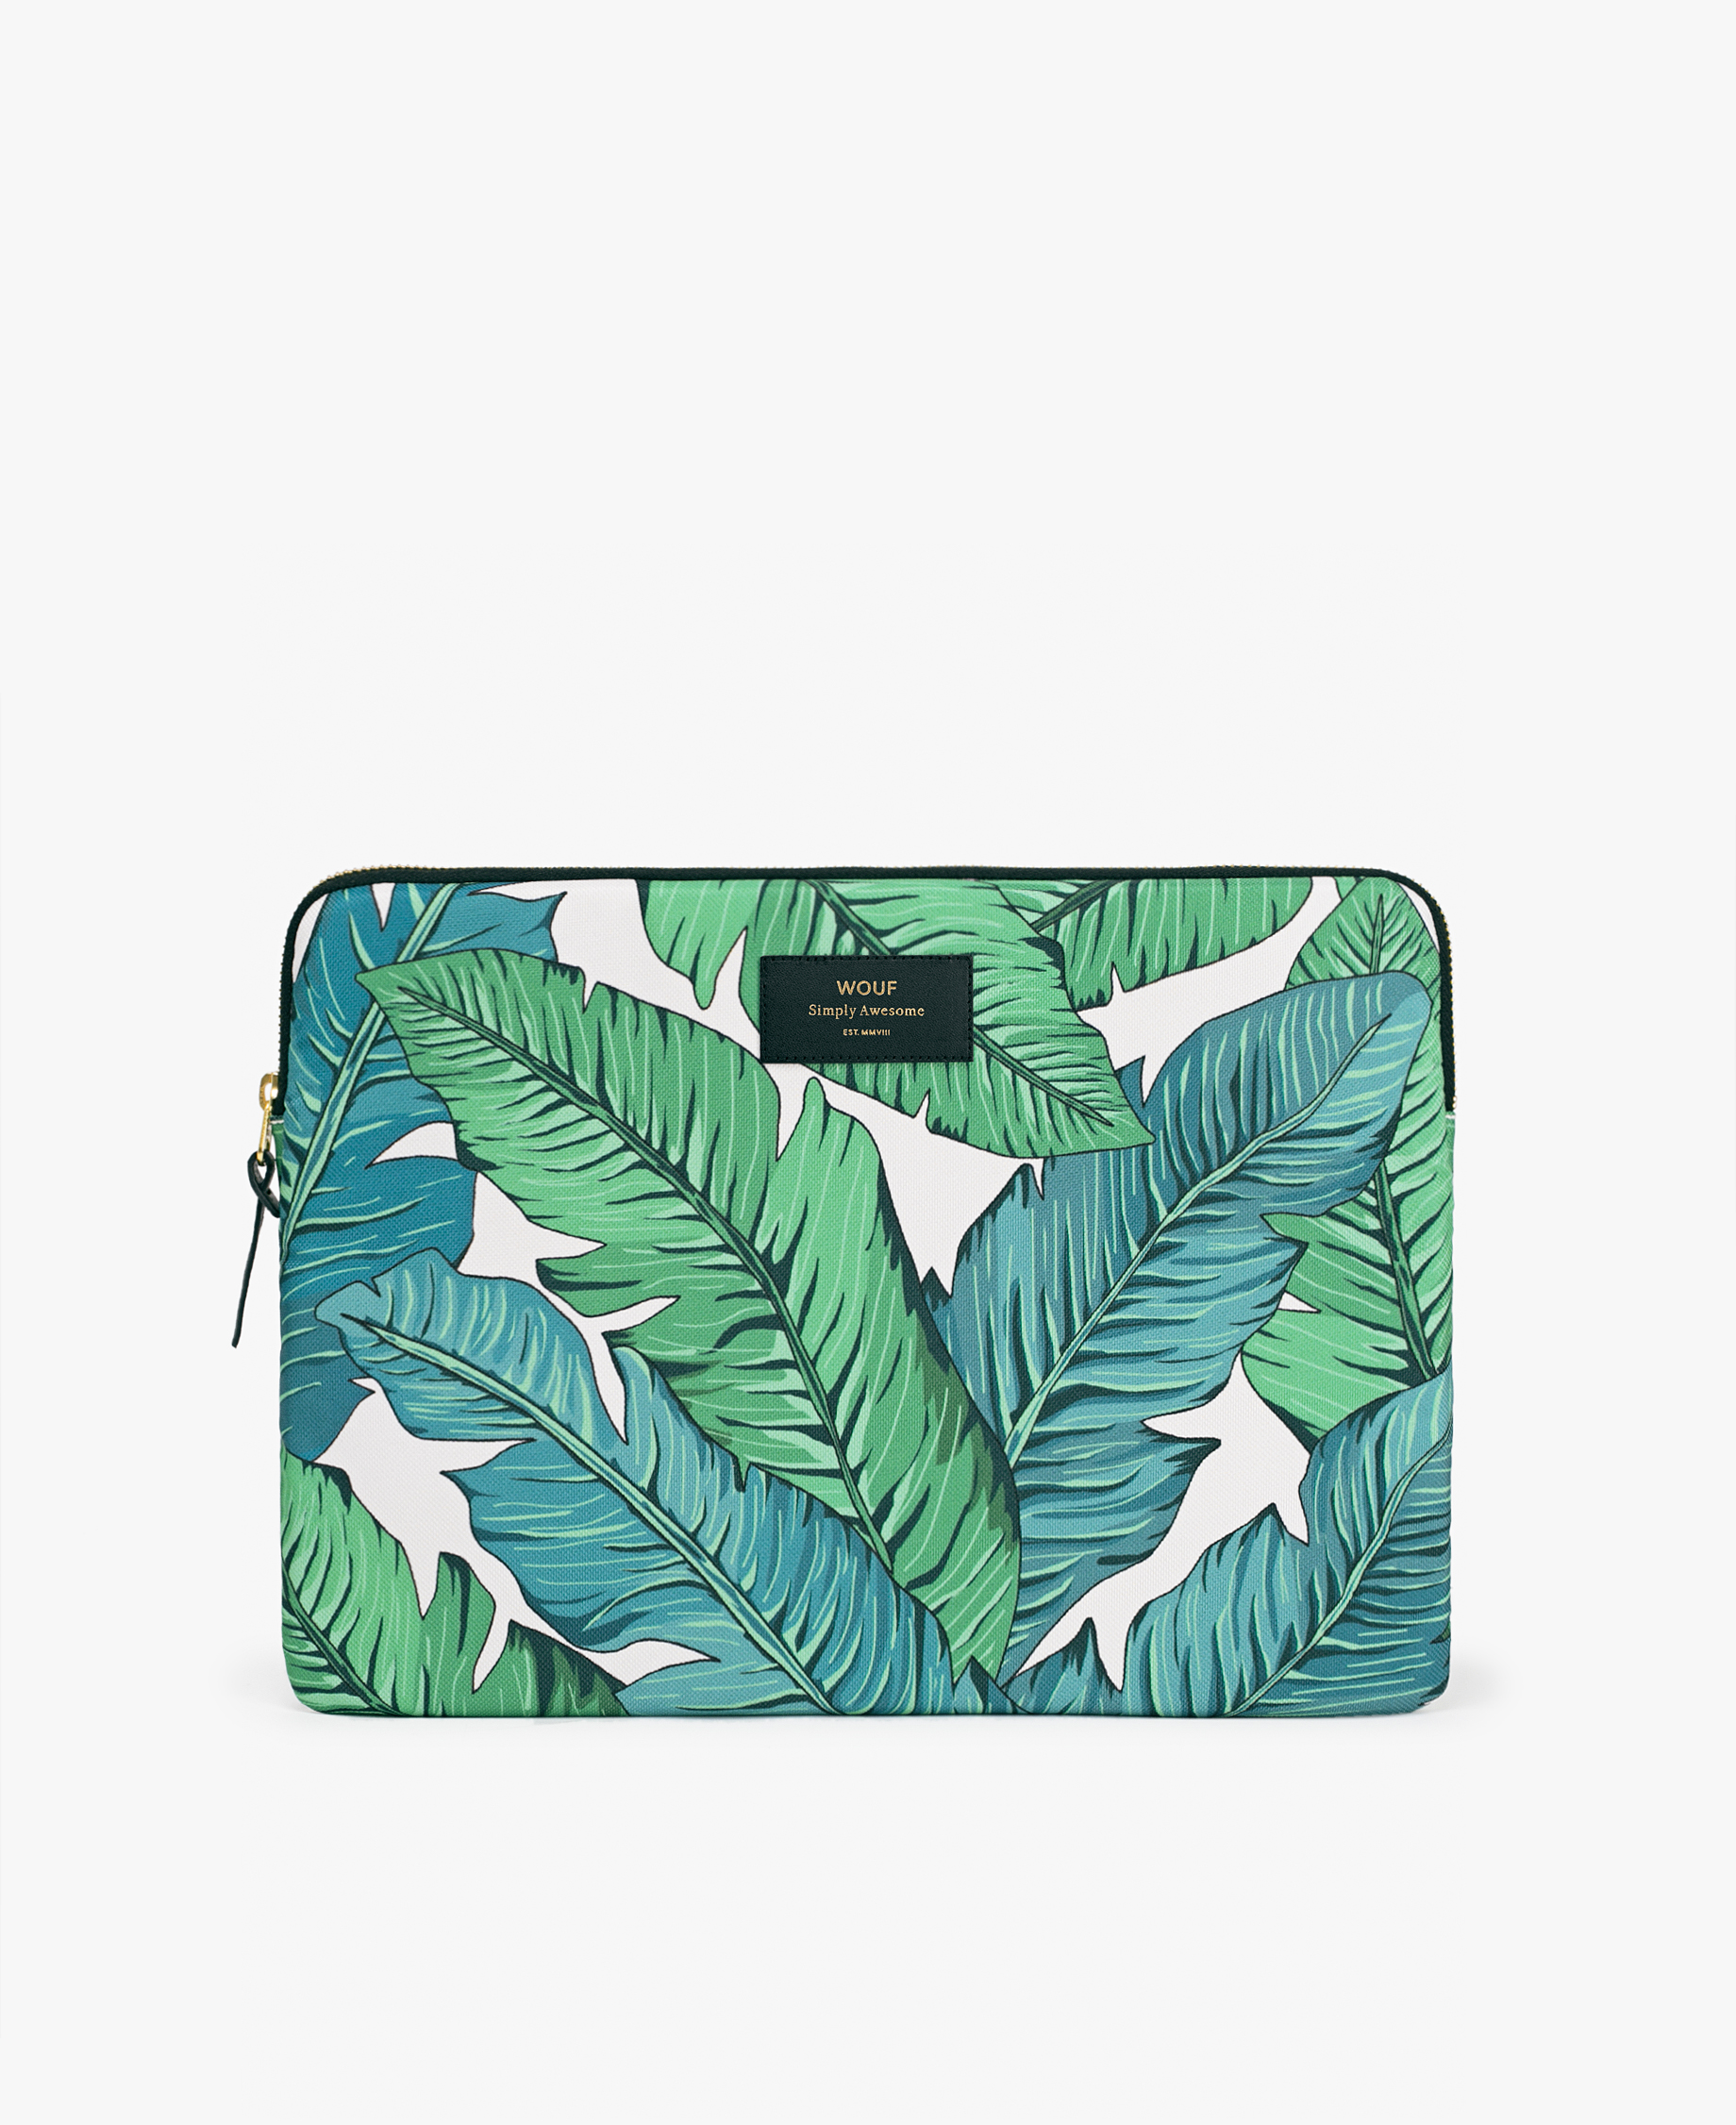 laptop case designed with green leaves